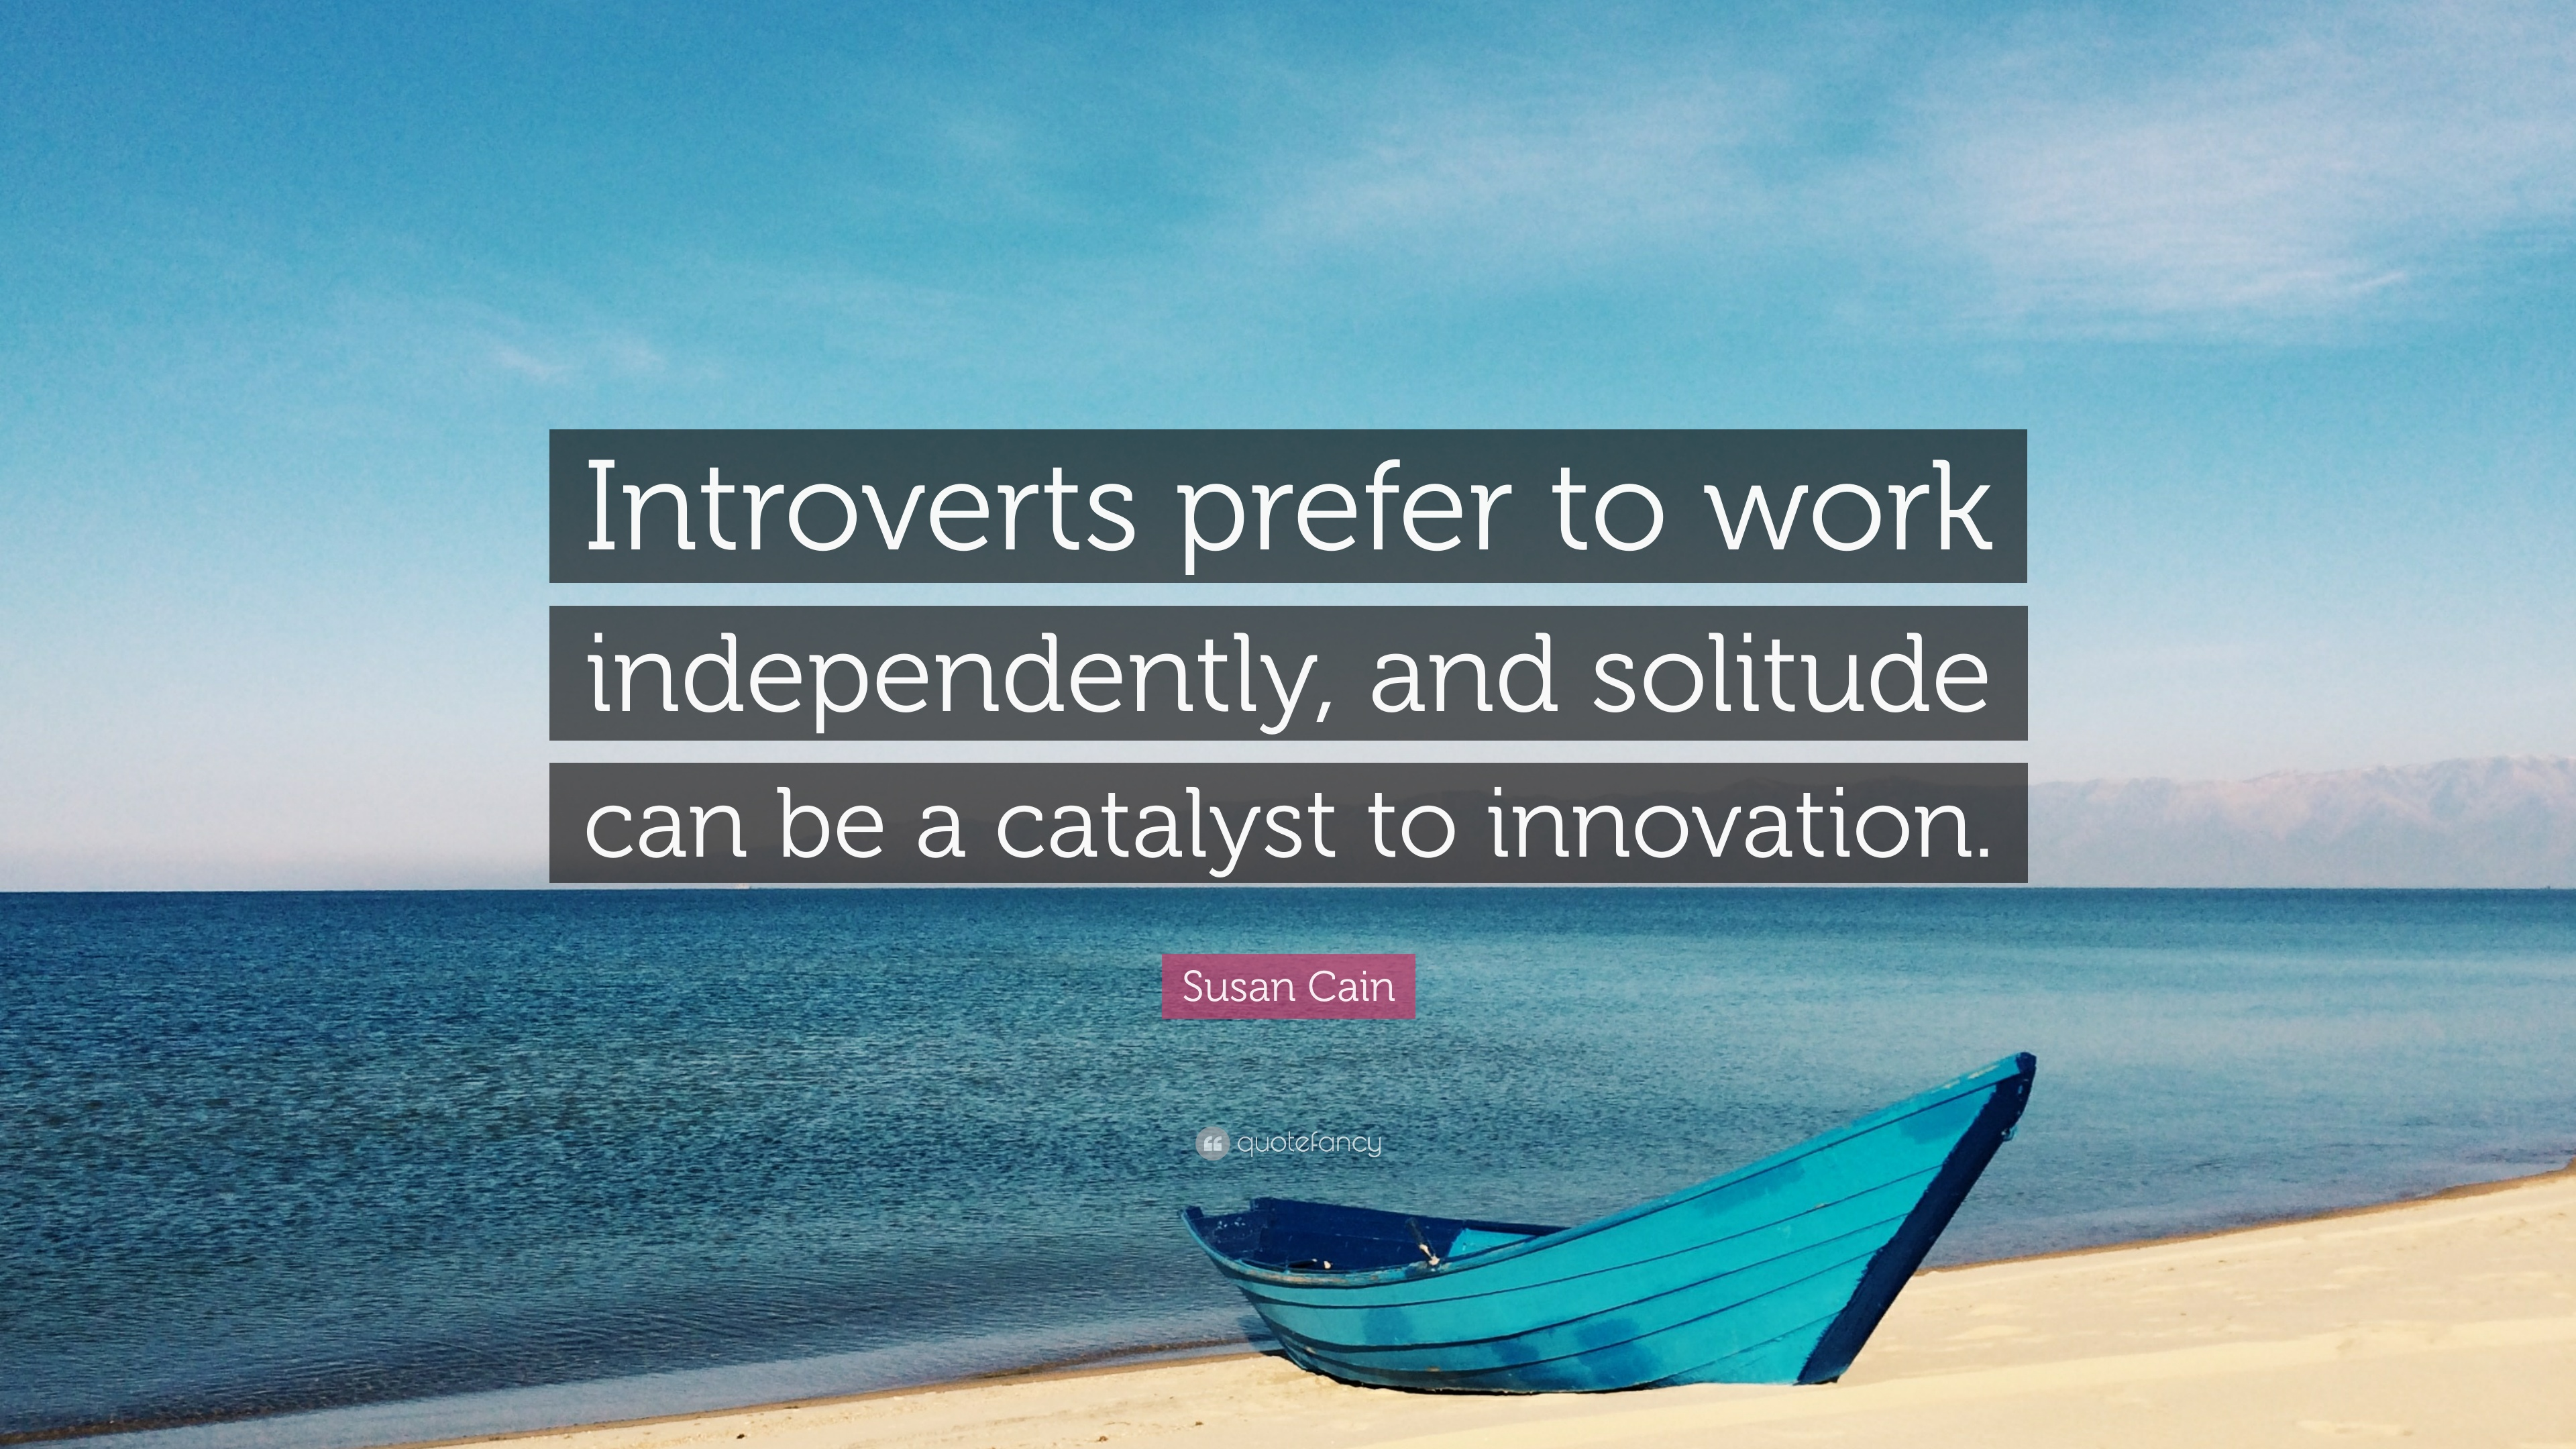 susan cain quote introverts prefer to work independently and solitude can be a